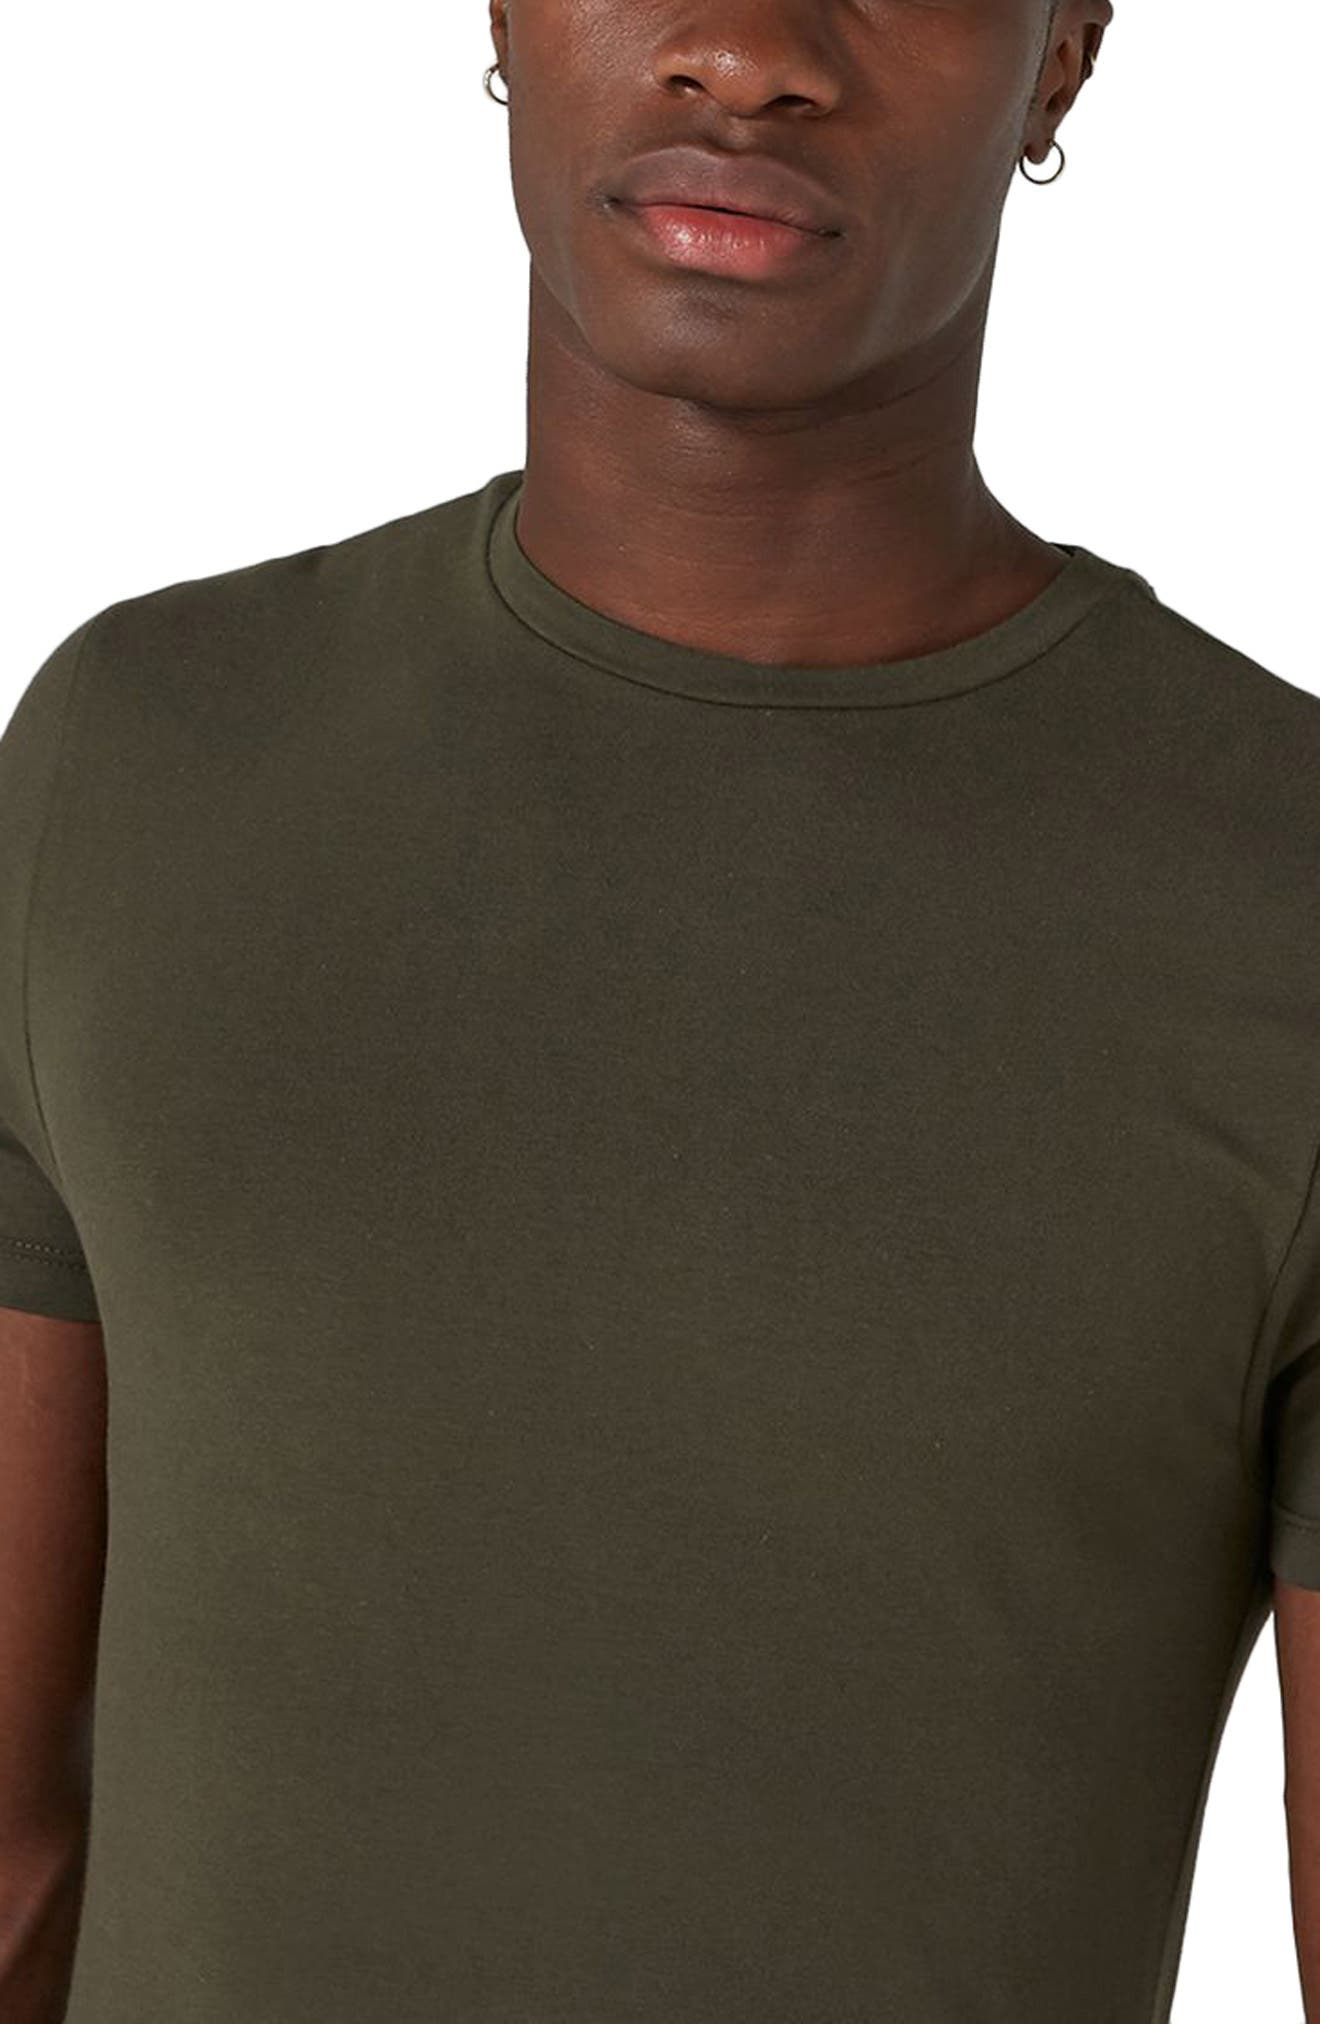 Ultra Muscle Fit T-Shirt,                             Alternate thumbnail 3, color,                             Olive